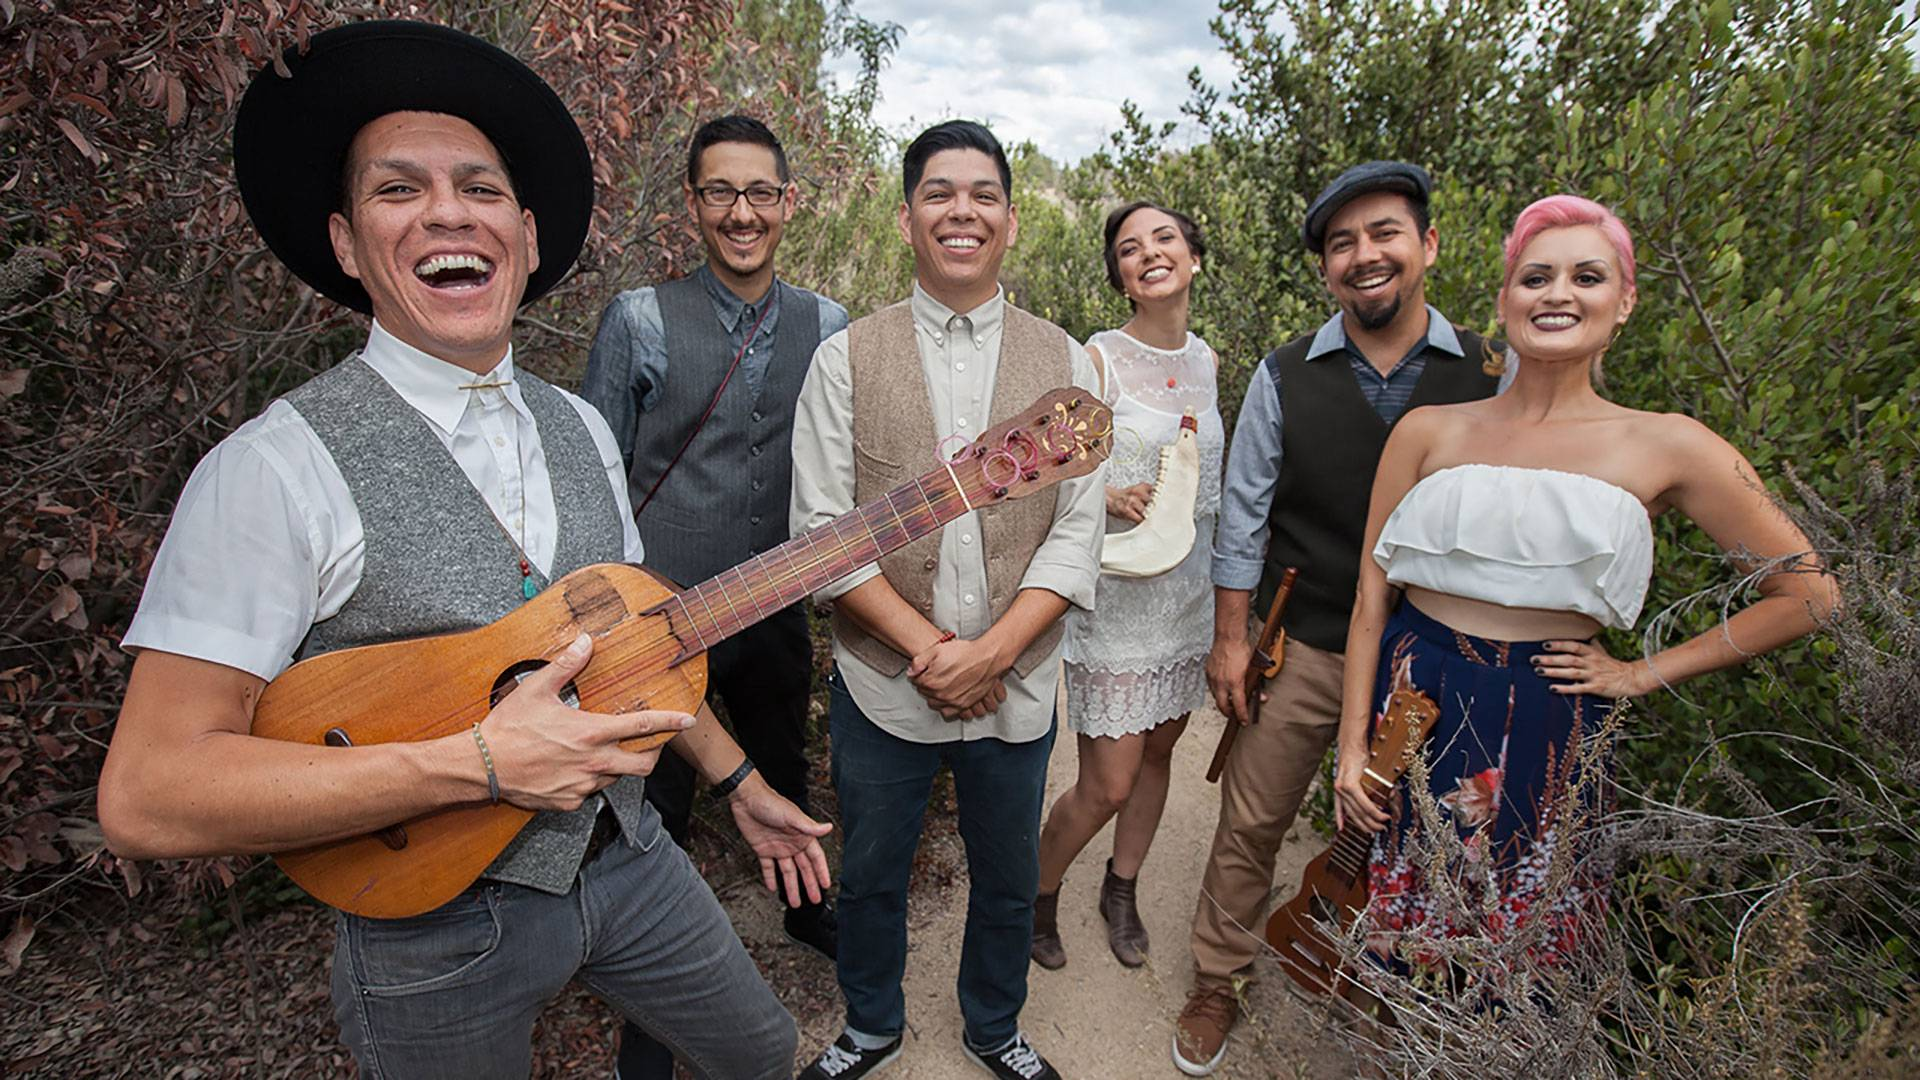 Las Cafeteras to combine vibrant East L.A. sound and positive message in 'party' performance